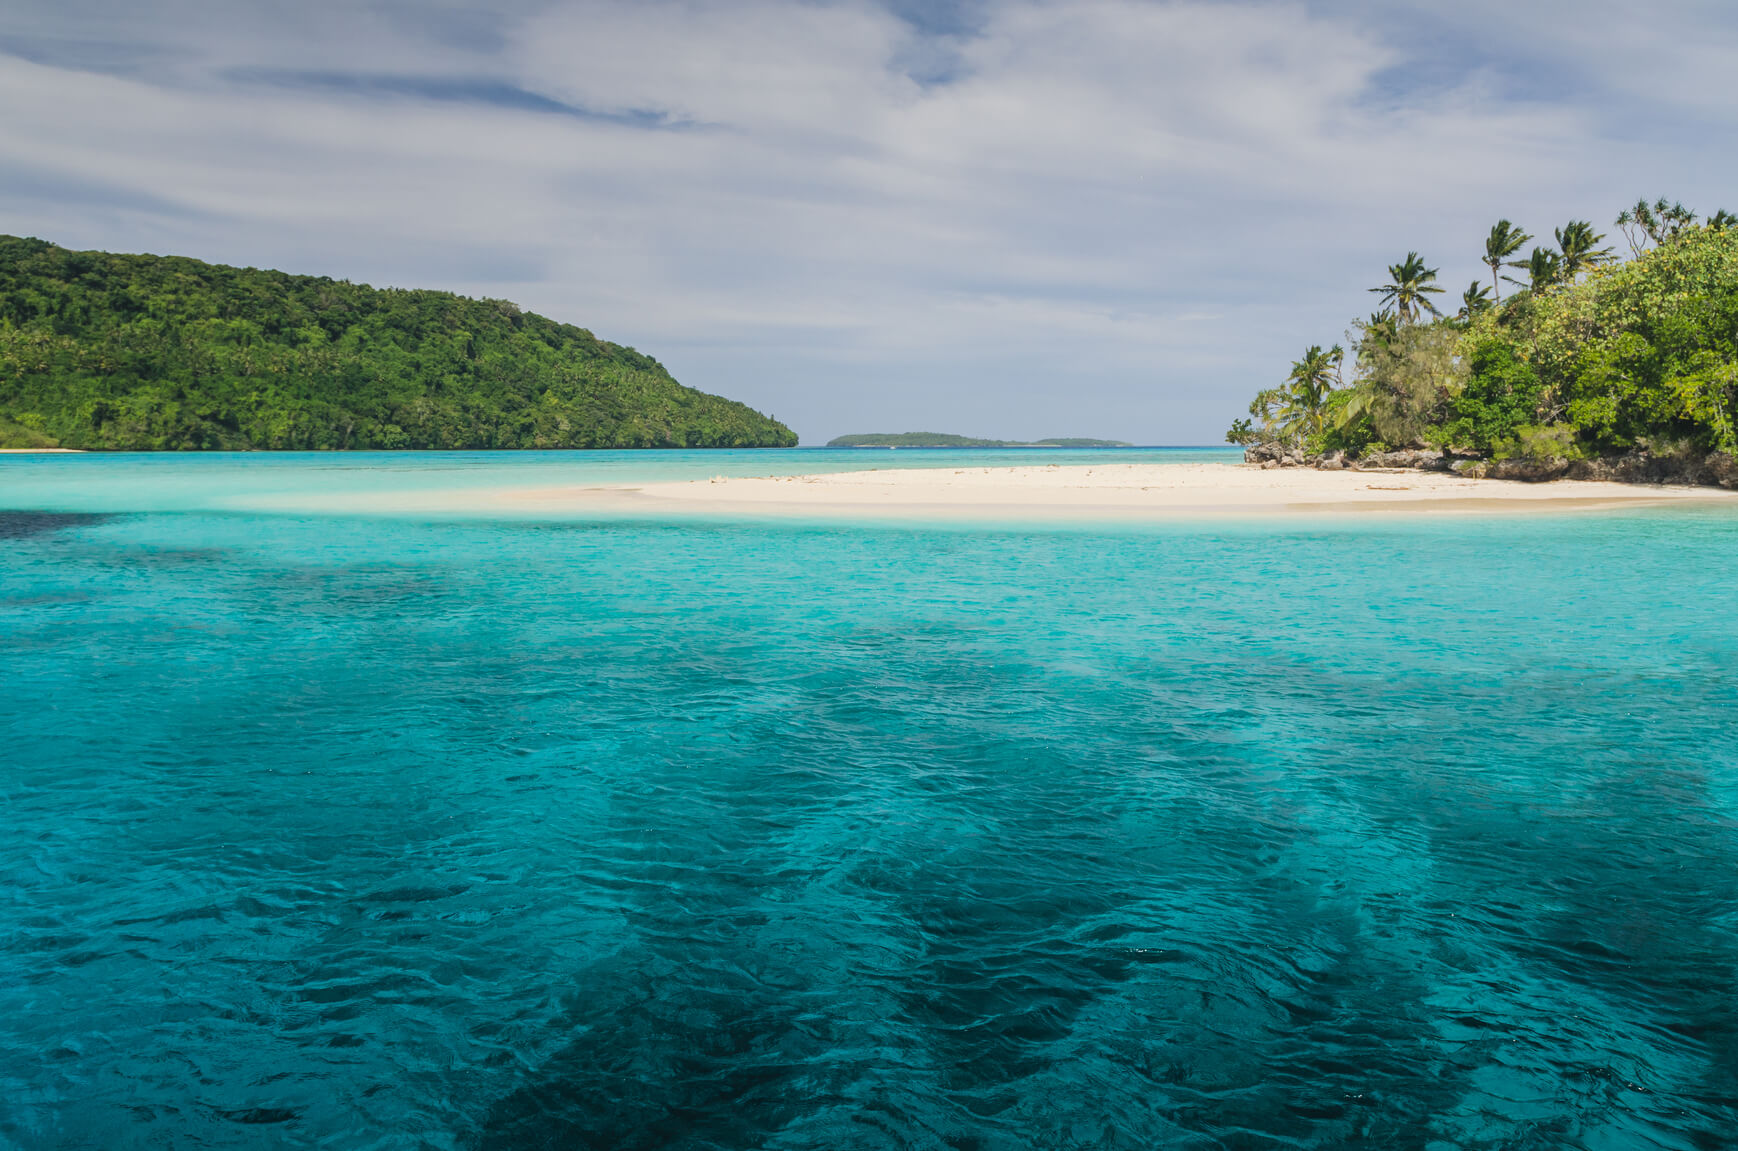 Auckland, New Zealand to Tonga for only $473 NZD roundtrip